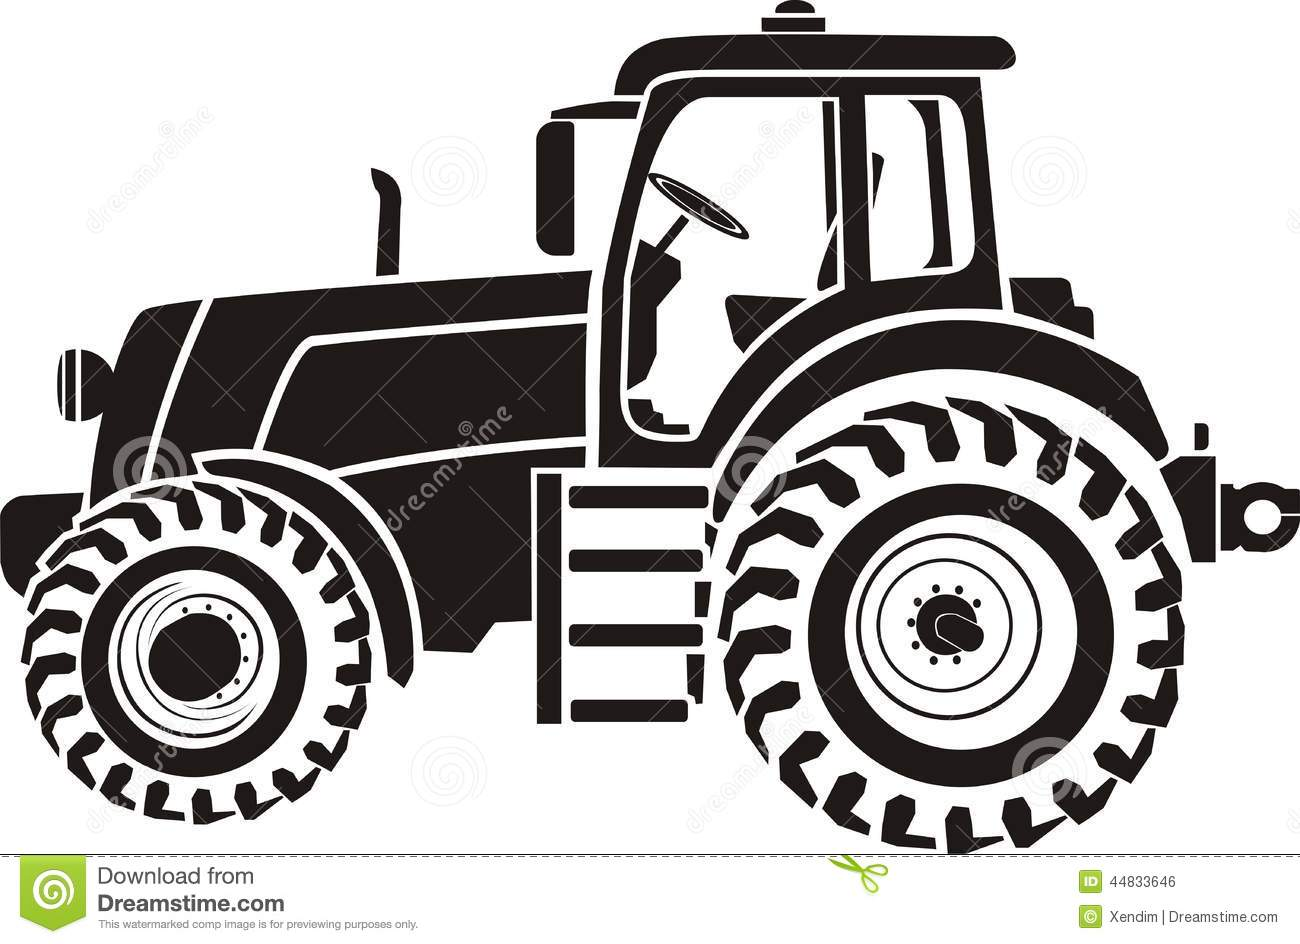 Tractor Stock Vector - Image: 44833646